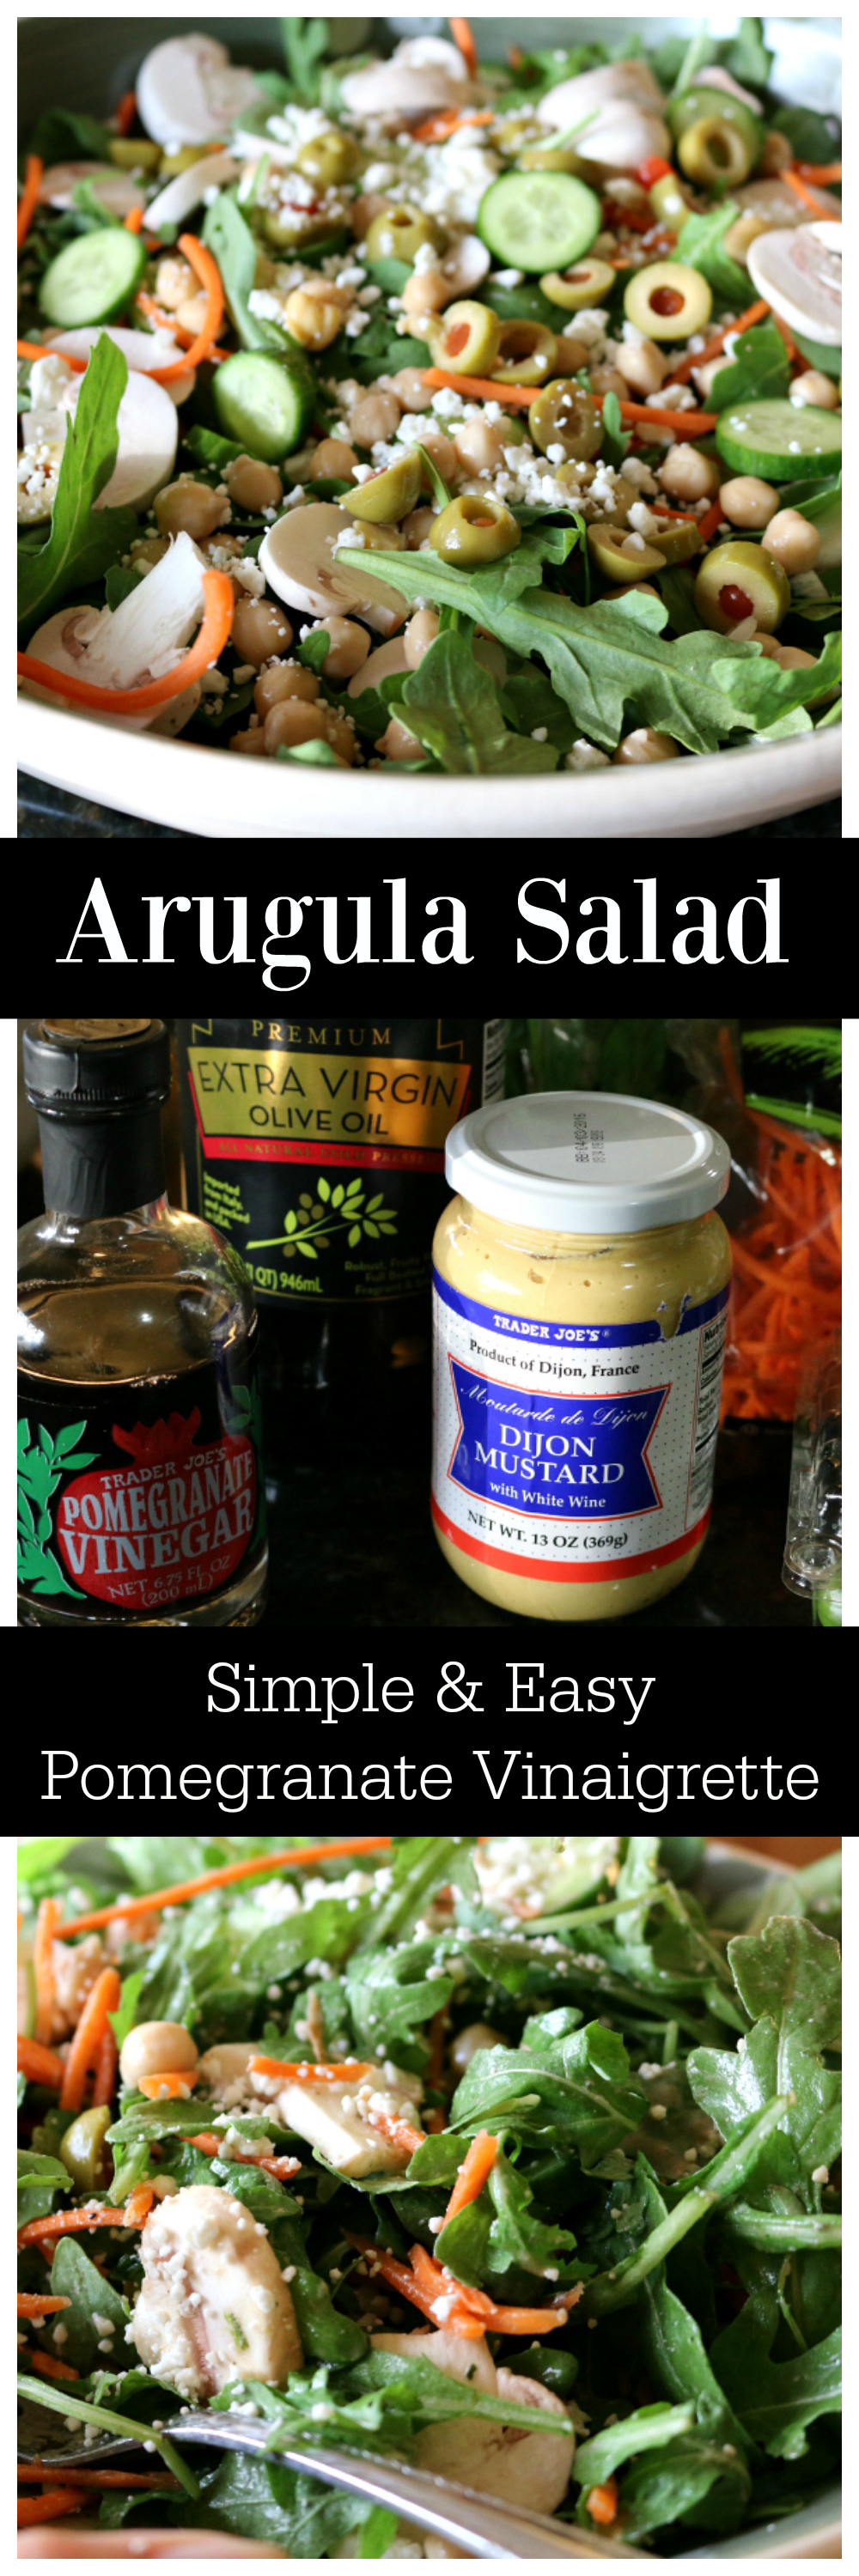 Healthy Eating | Eating Clean and Green | Simple Recipe for Arugula Salad with Pomegranate Vinaigrette